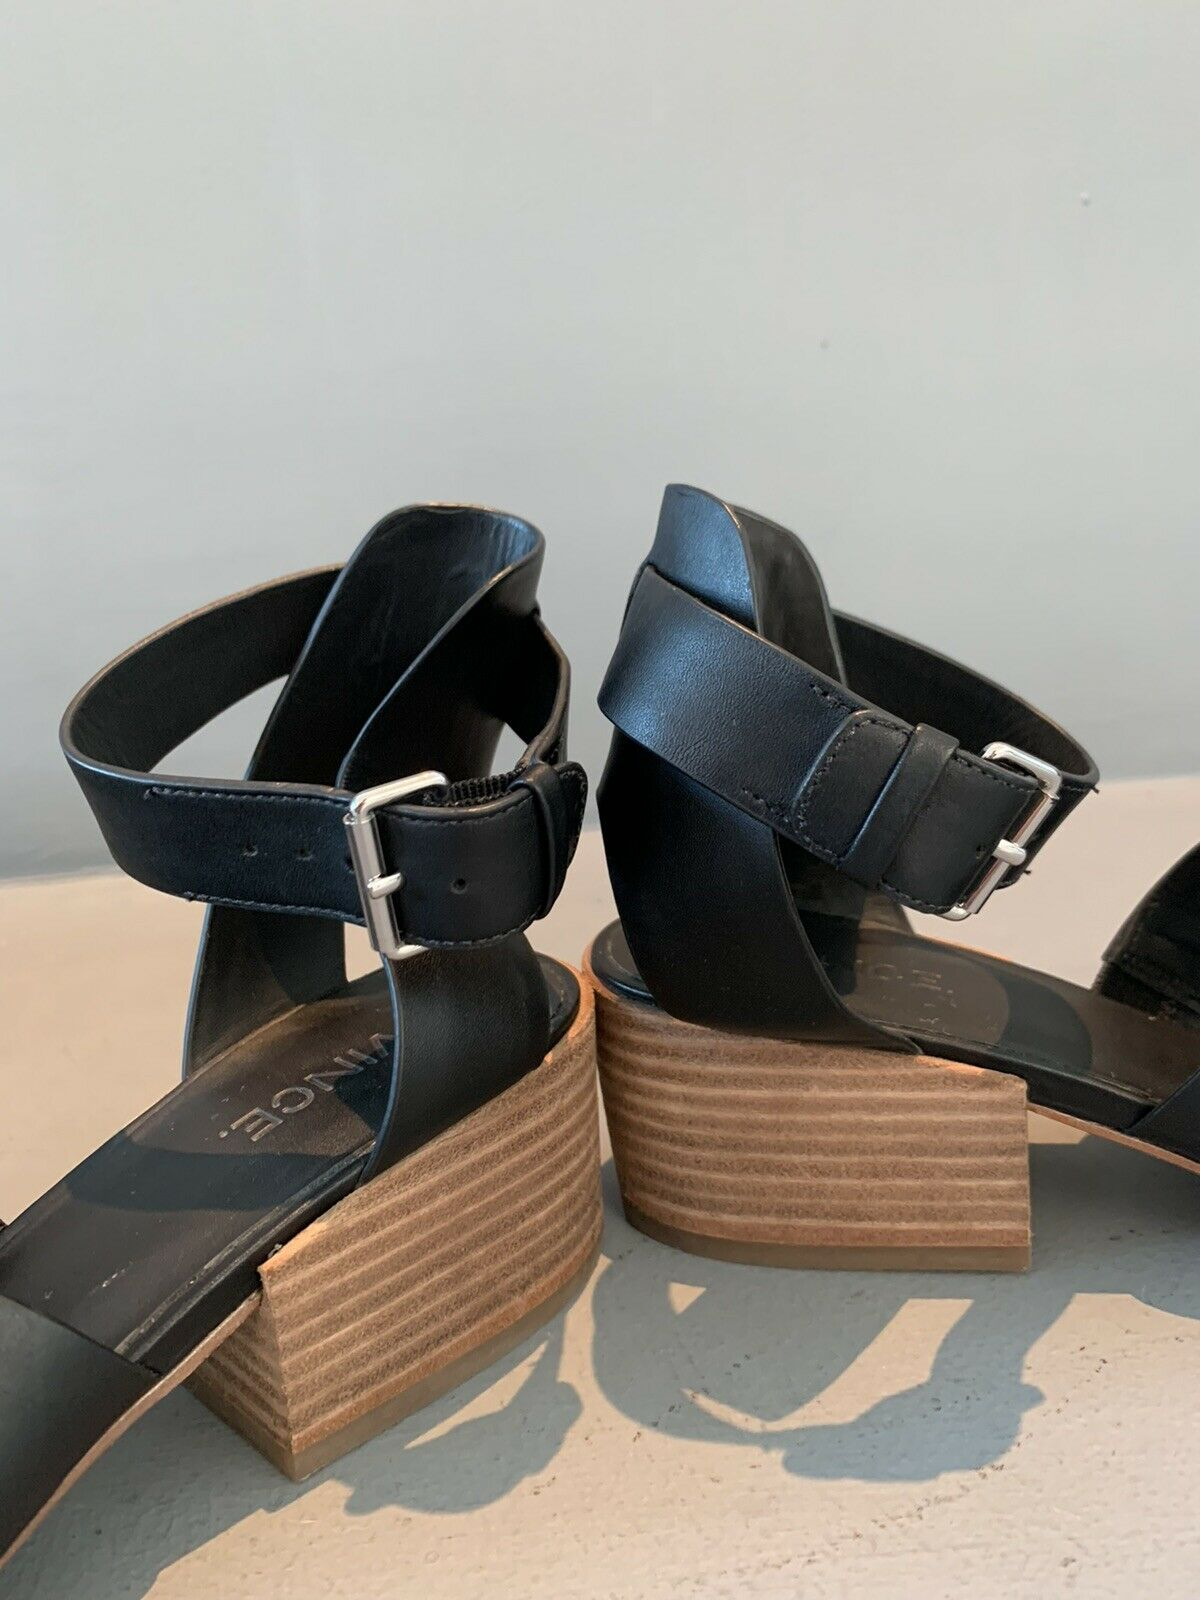 Vince Strappy Sandals - image 11